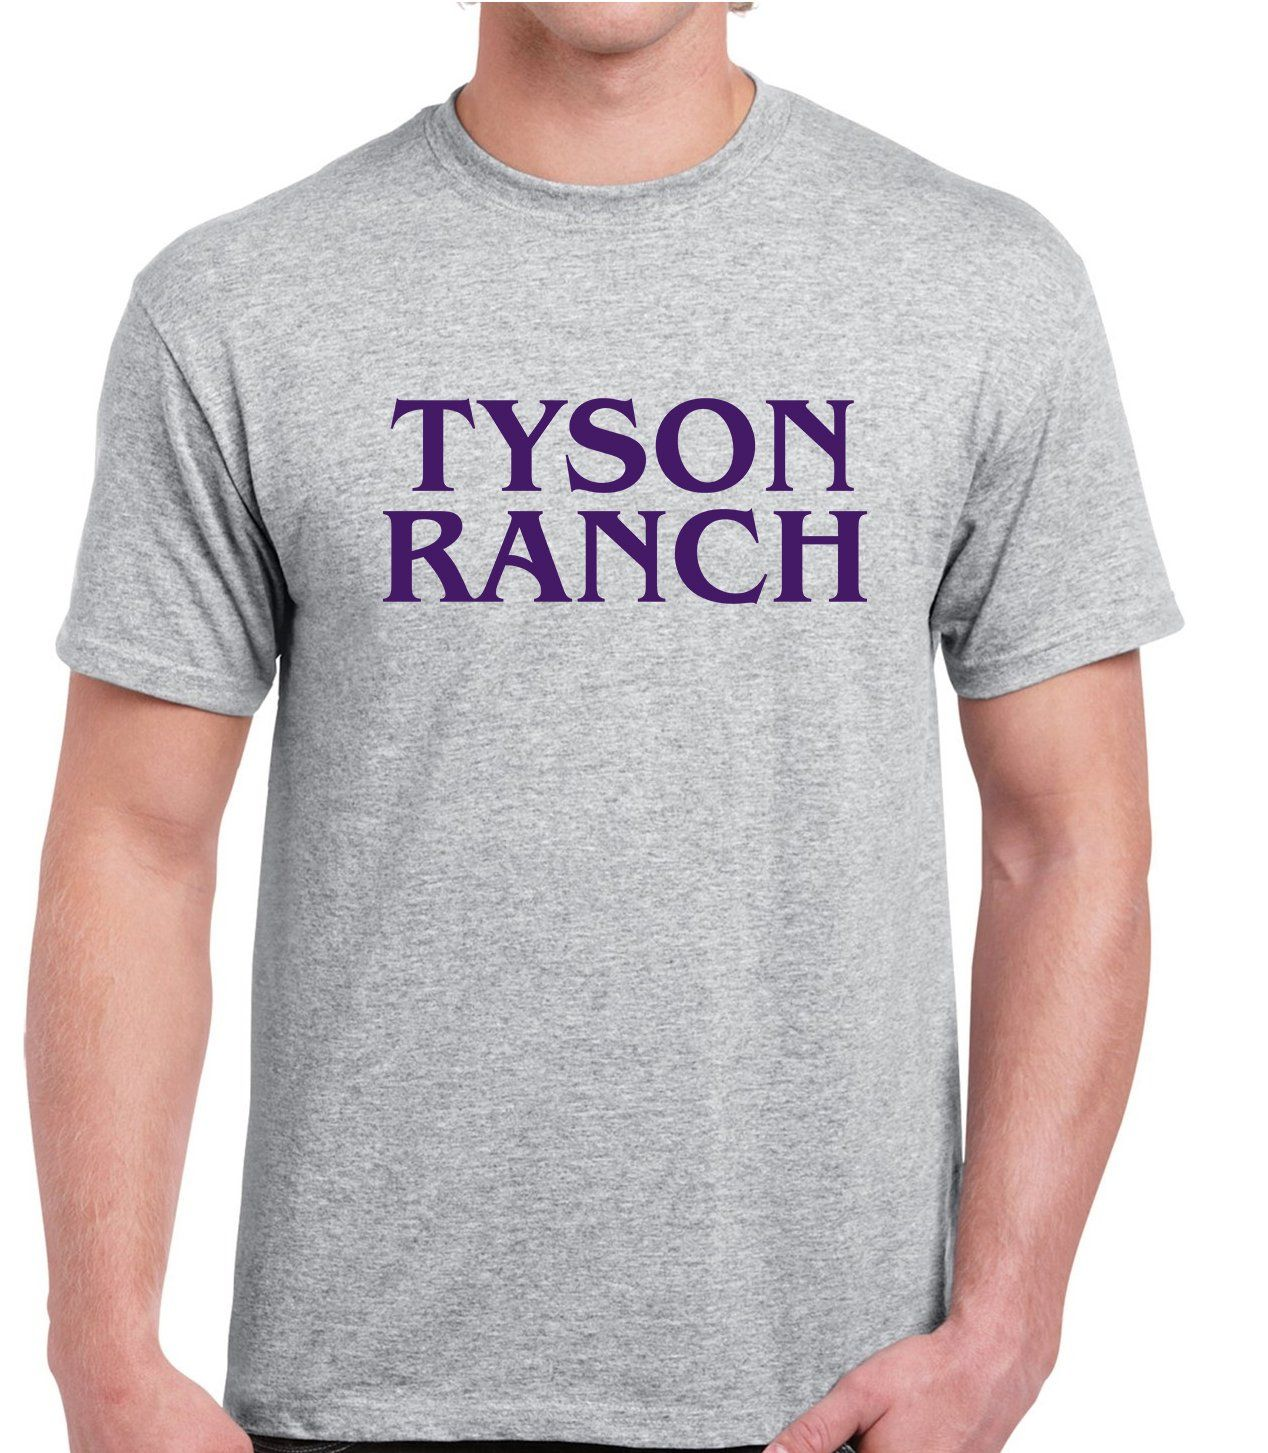 Tyson Ranch T-Shirt